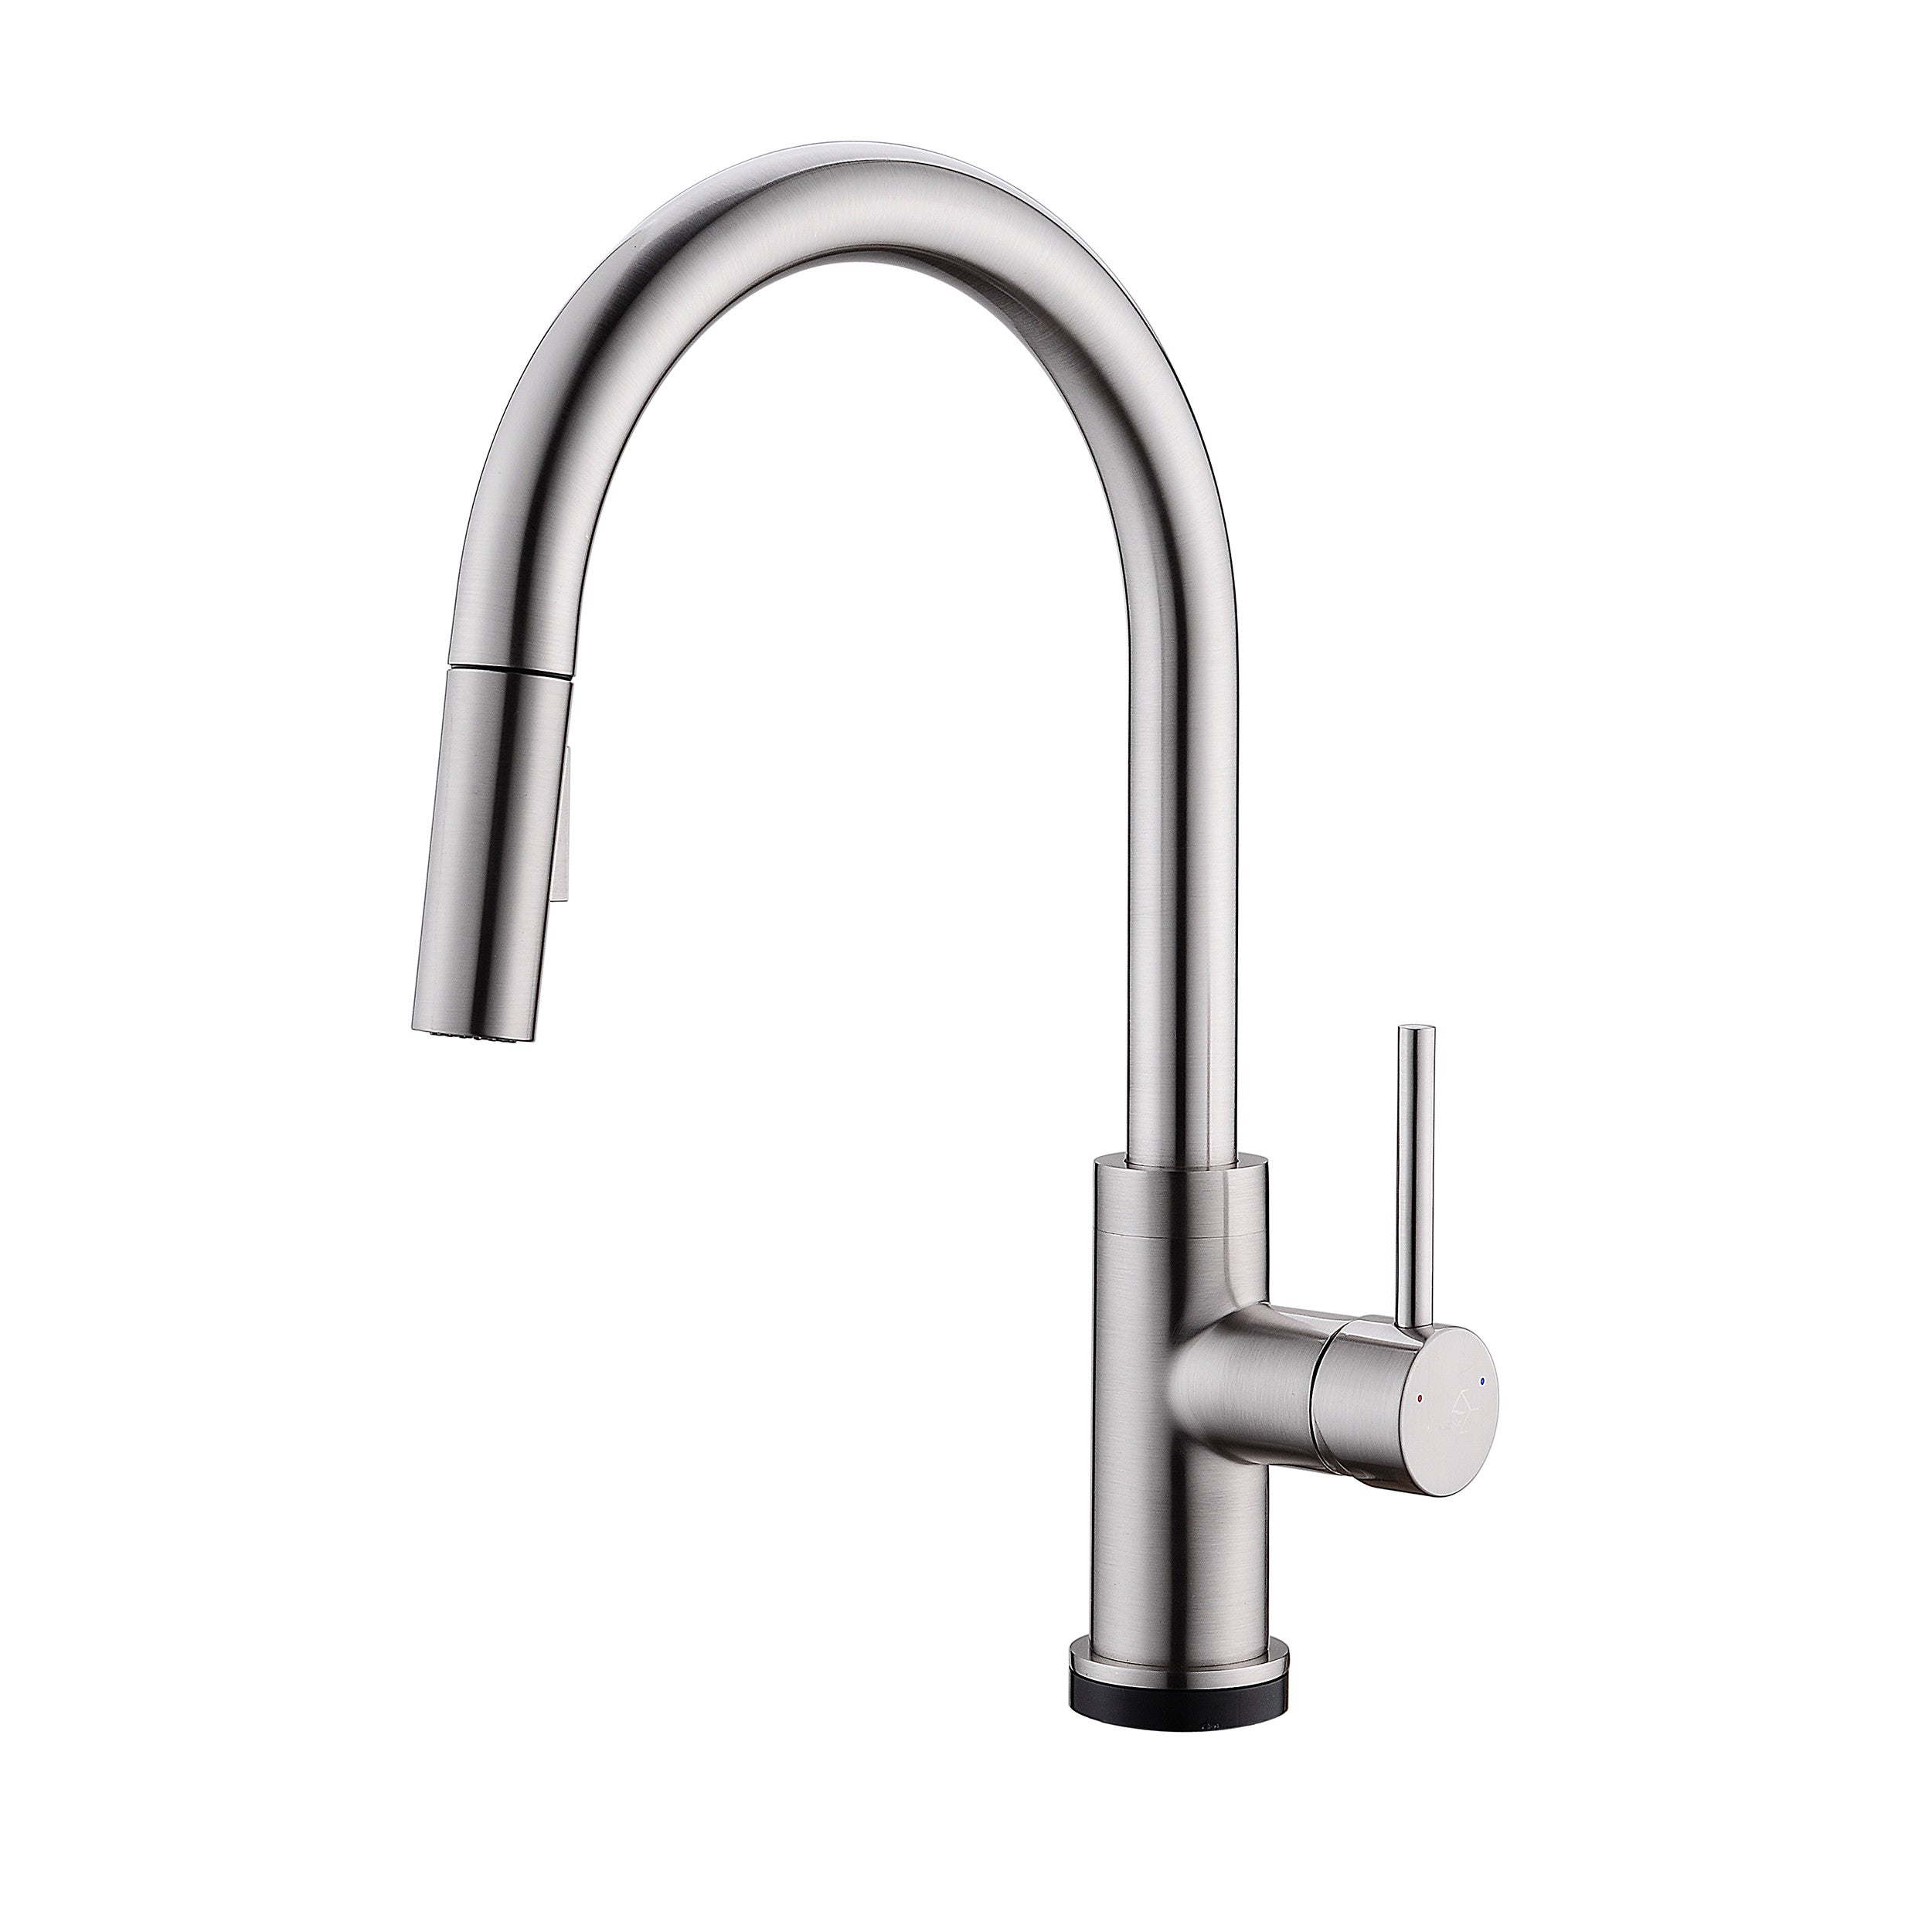 BAI 0651 Single Handle Kitchen Faucet With Pull-Down Spray / Touch ...